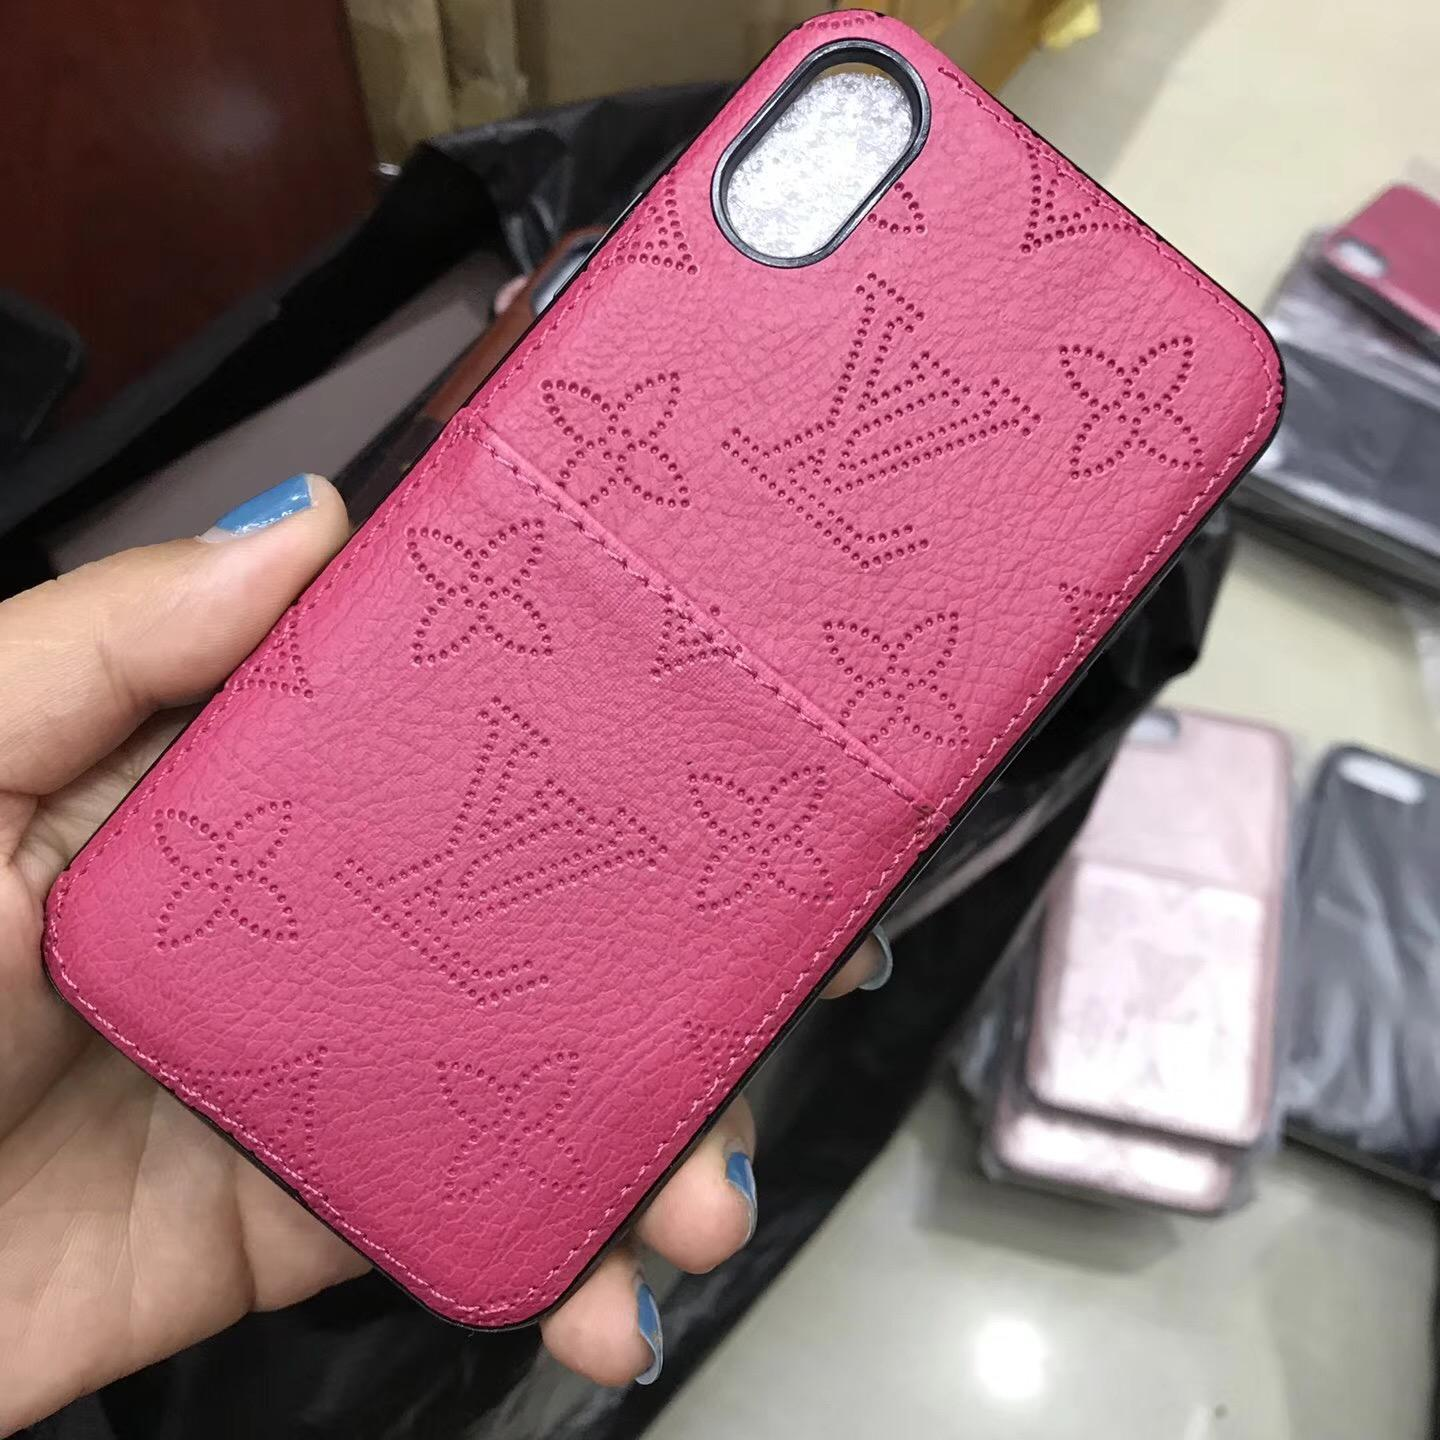 09985bfc54f7 ... Luxury brand LV case with card for iphone X 8 8plus 7 7plus 6 6plus ...